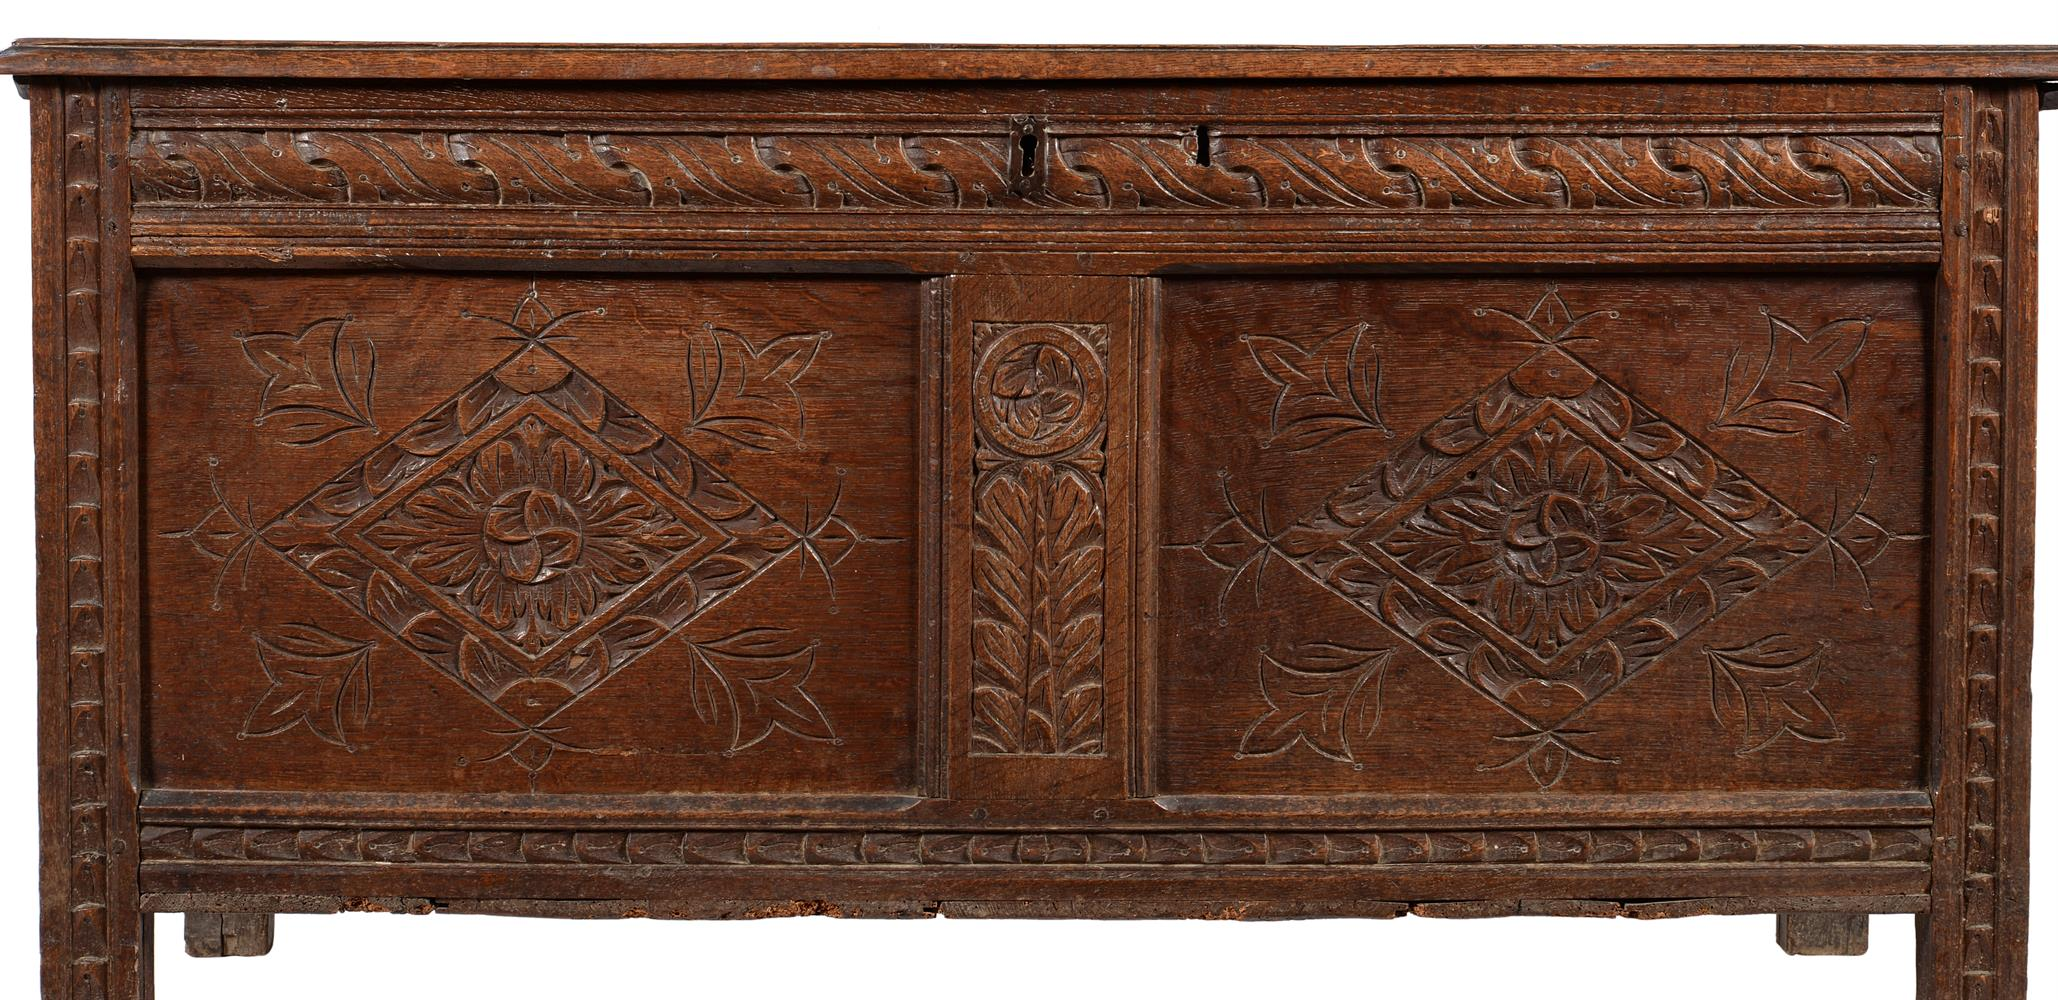 A carved oak coffer - Image 2 of 2